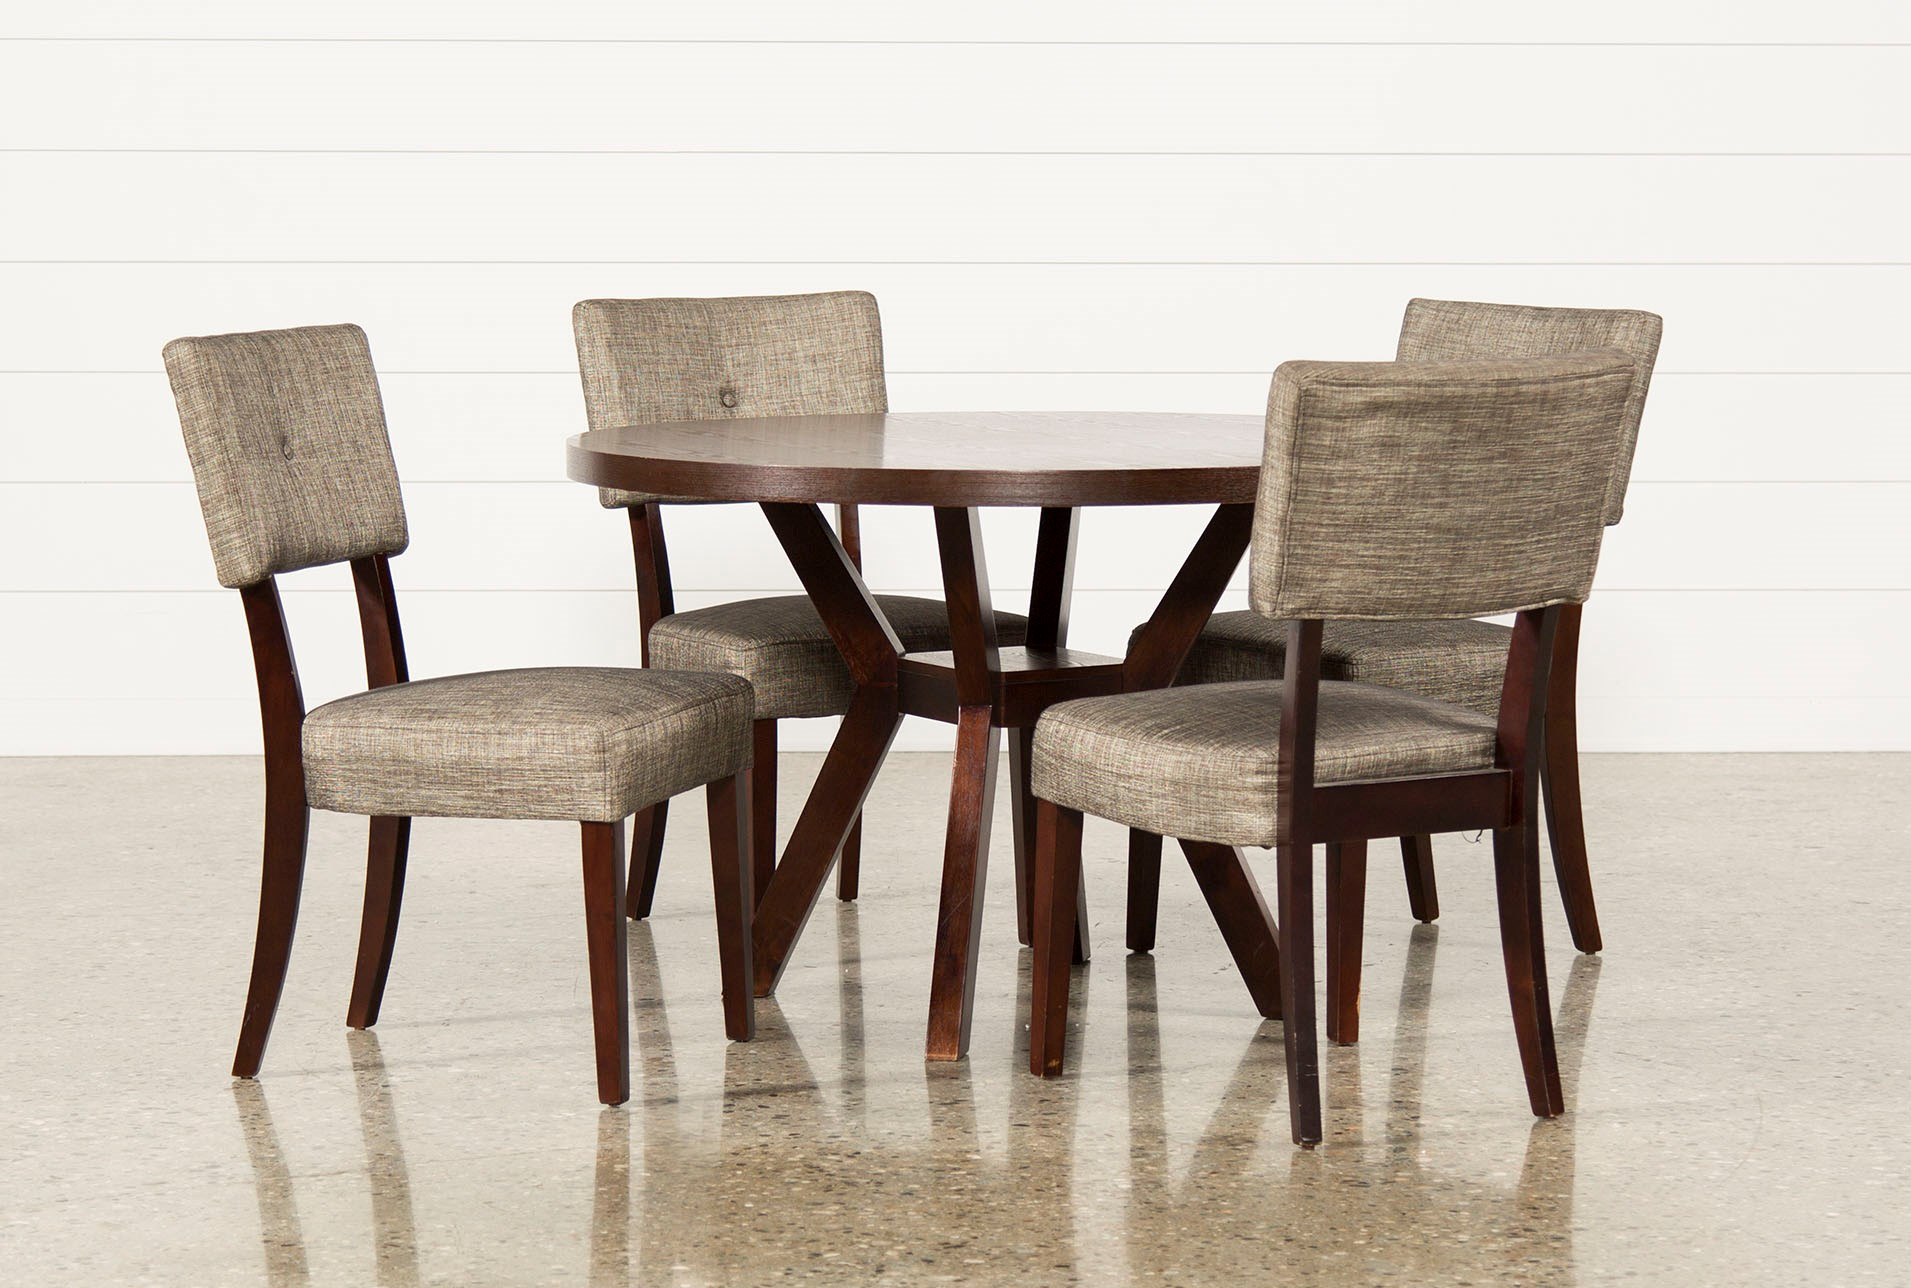 Macie 5 Piece Round Dining Set Qty 1 Has Been Successfully Added To Your Cart